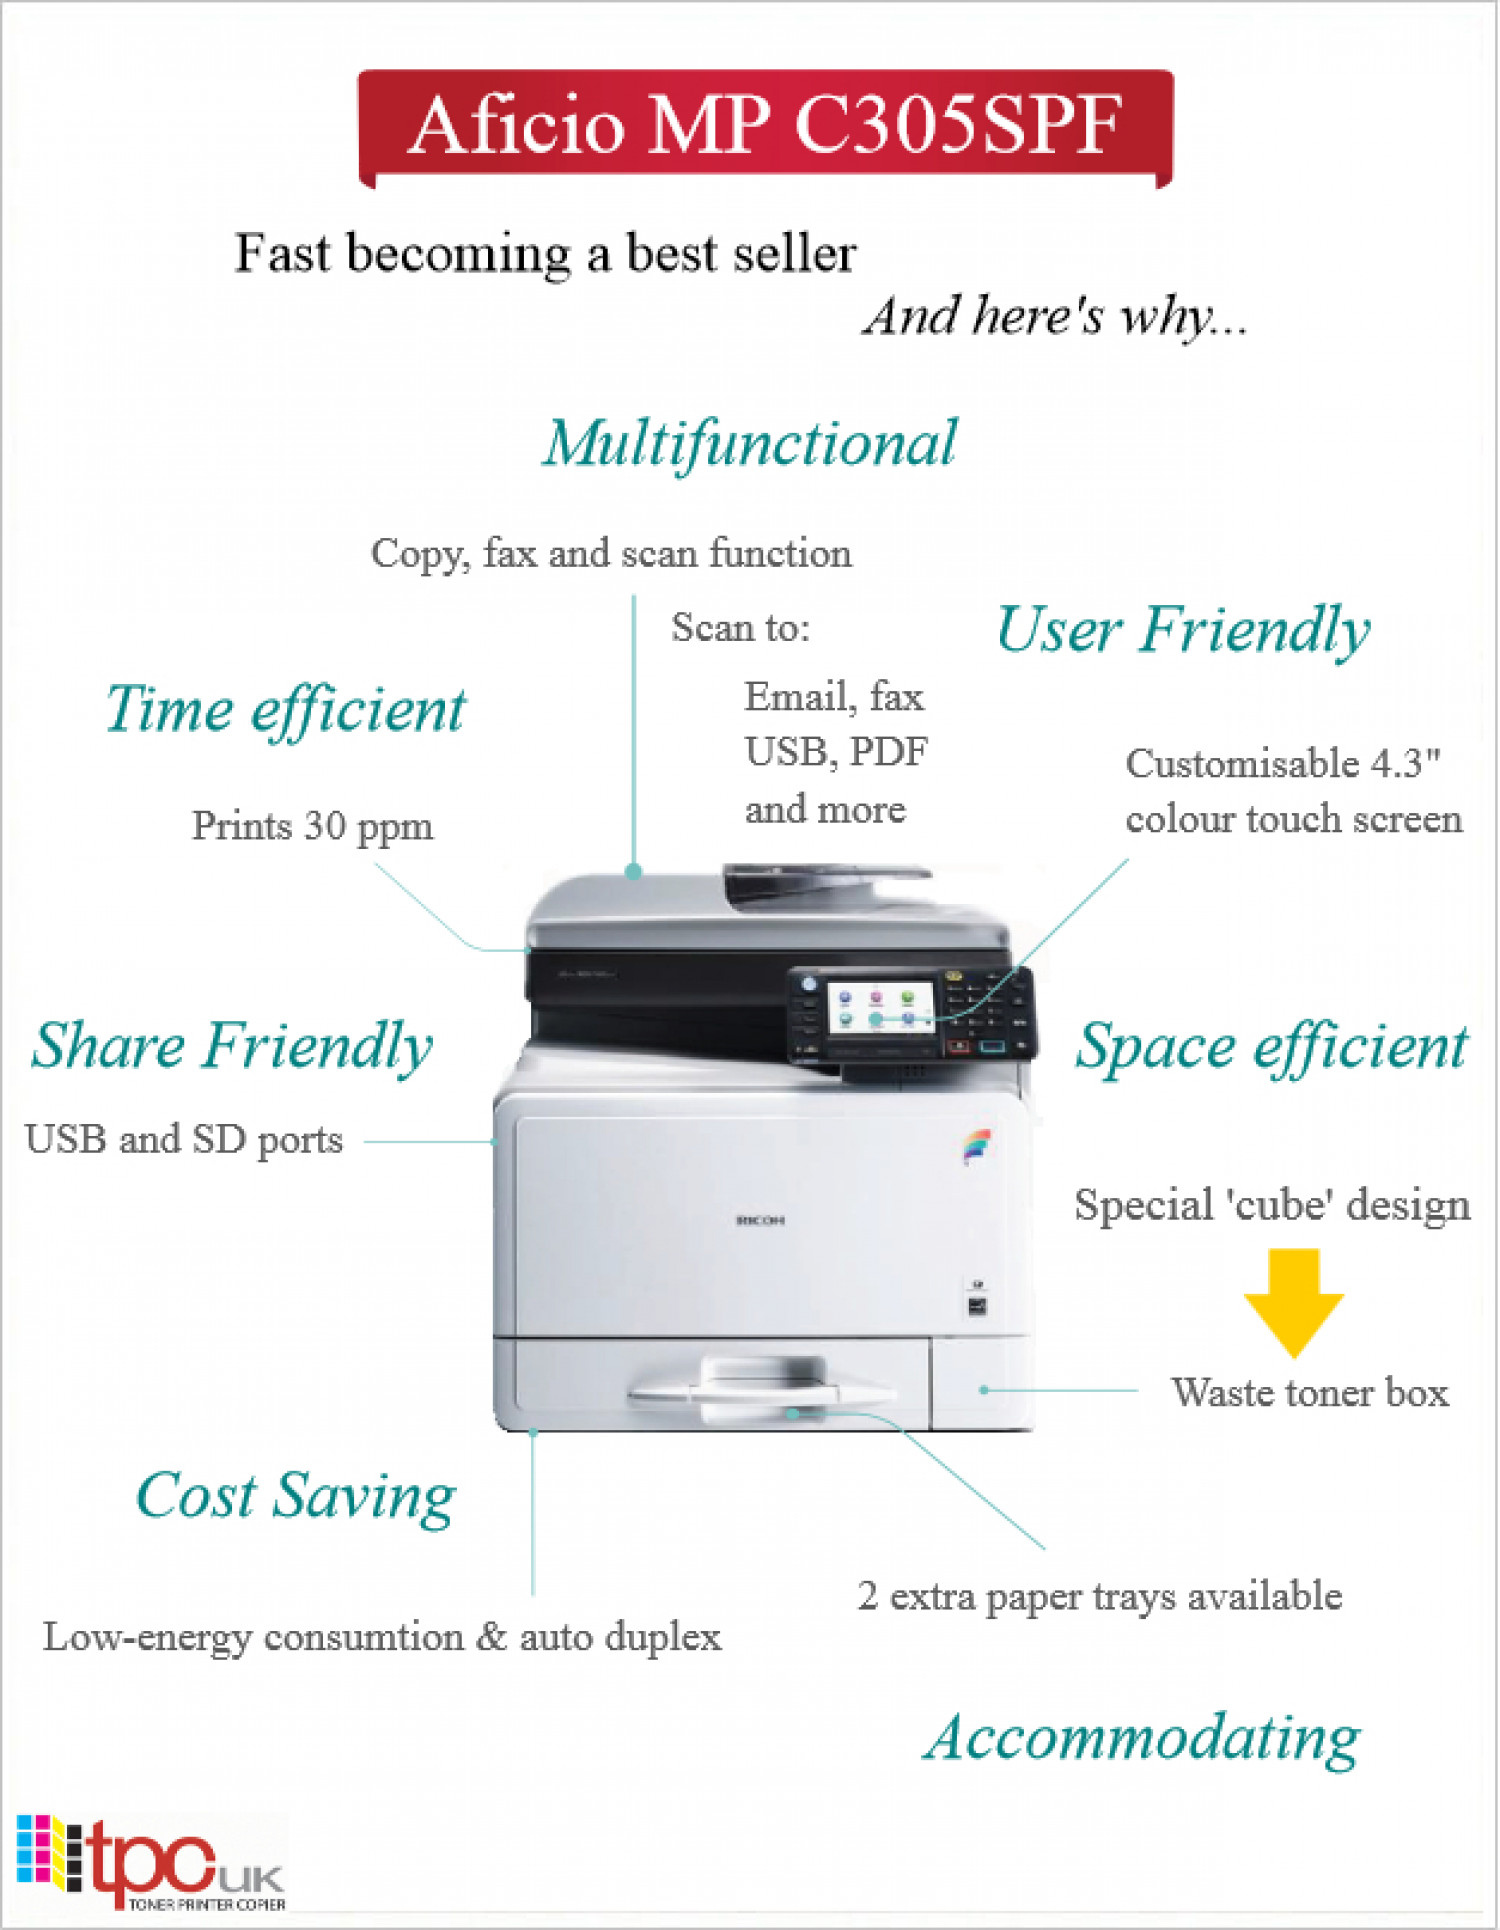 Top Printer from Ricoh Infographic